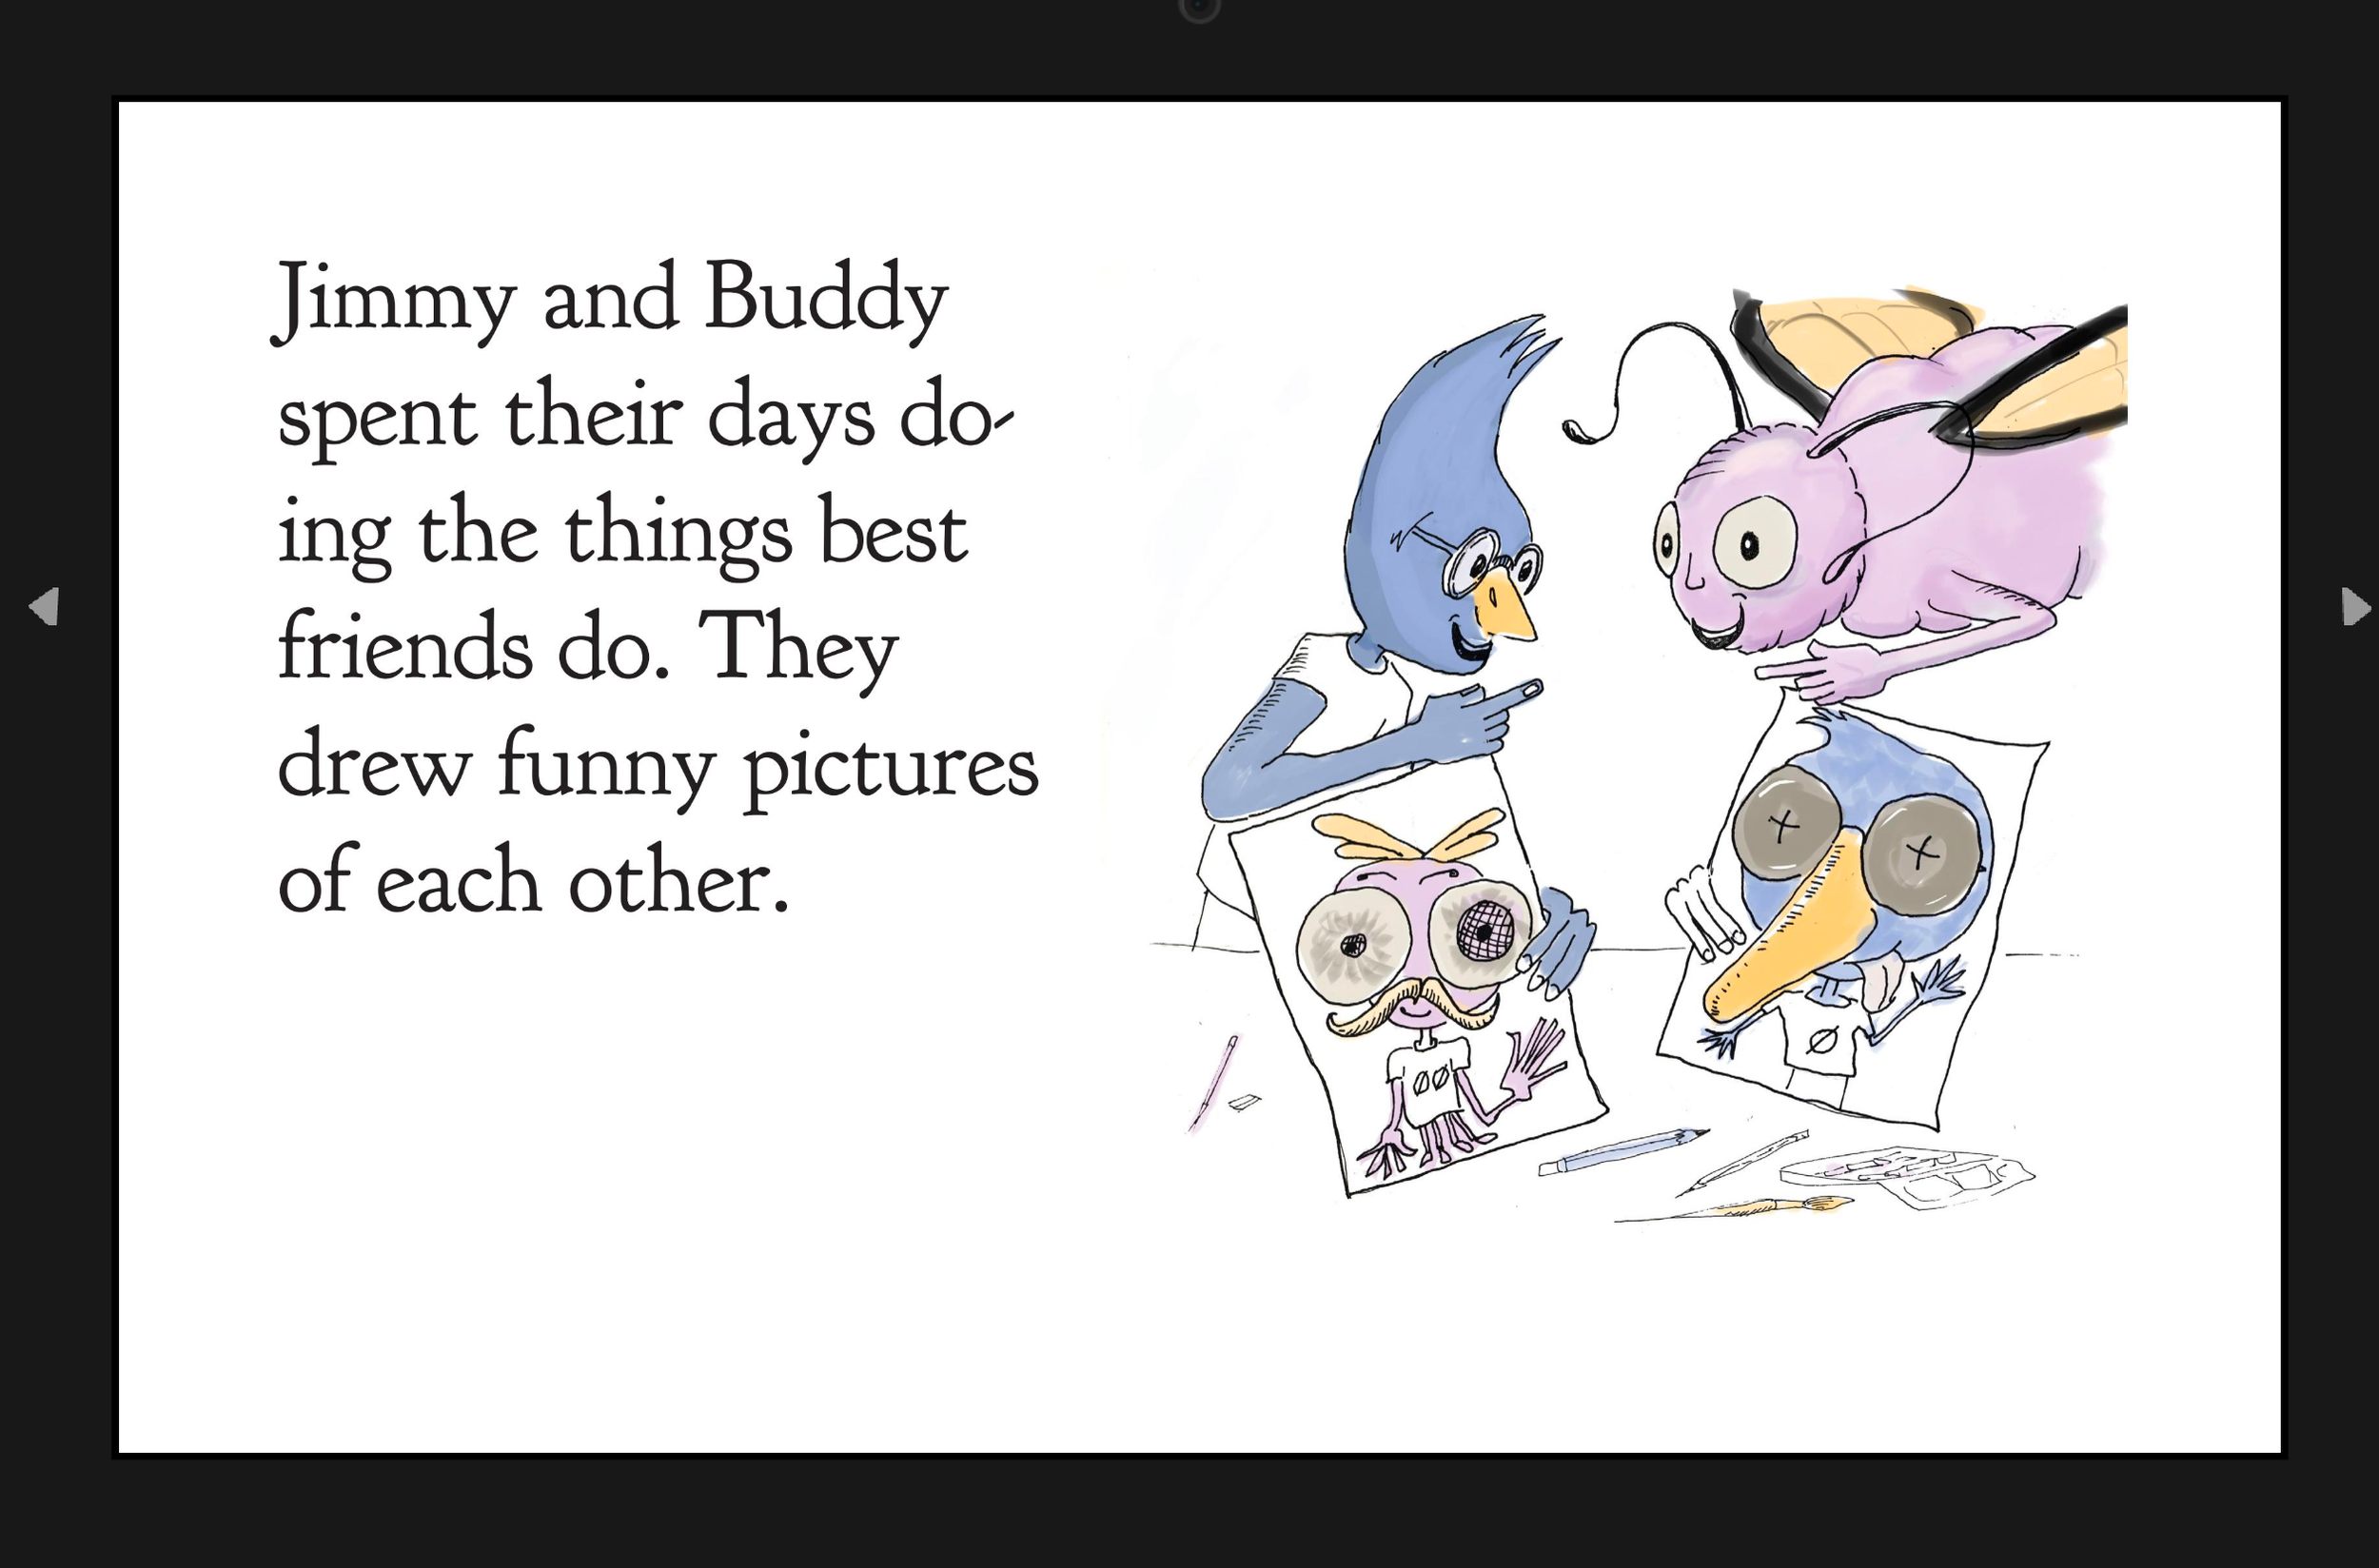 jimmy_buddy_making_fun.png, inDesign, preview,children's picture book